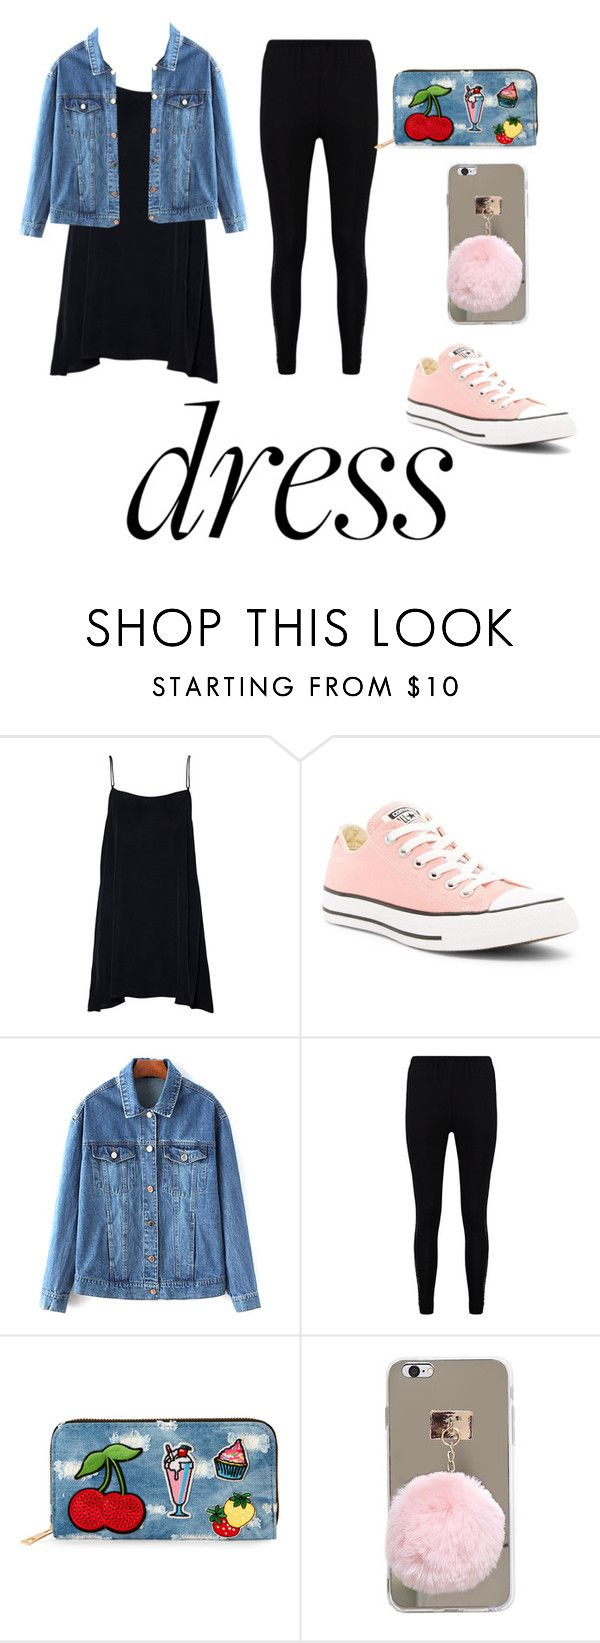 """#Under$100contest🤑"" by ahuvagutnick ❤ liked on Polyvore featuring Converse, Boohoo and Viola"